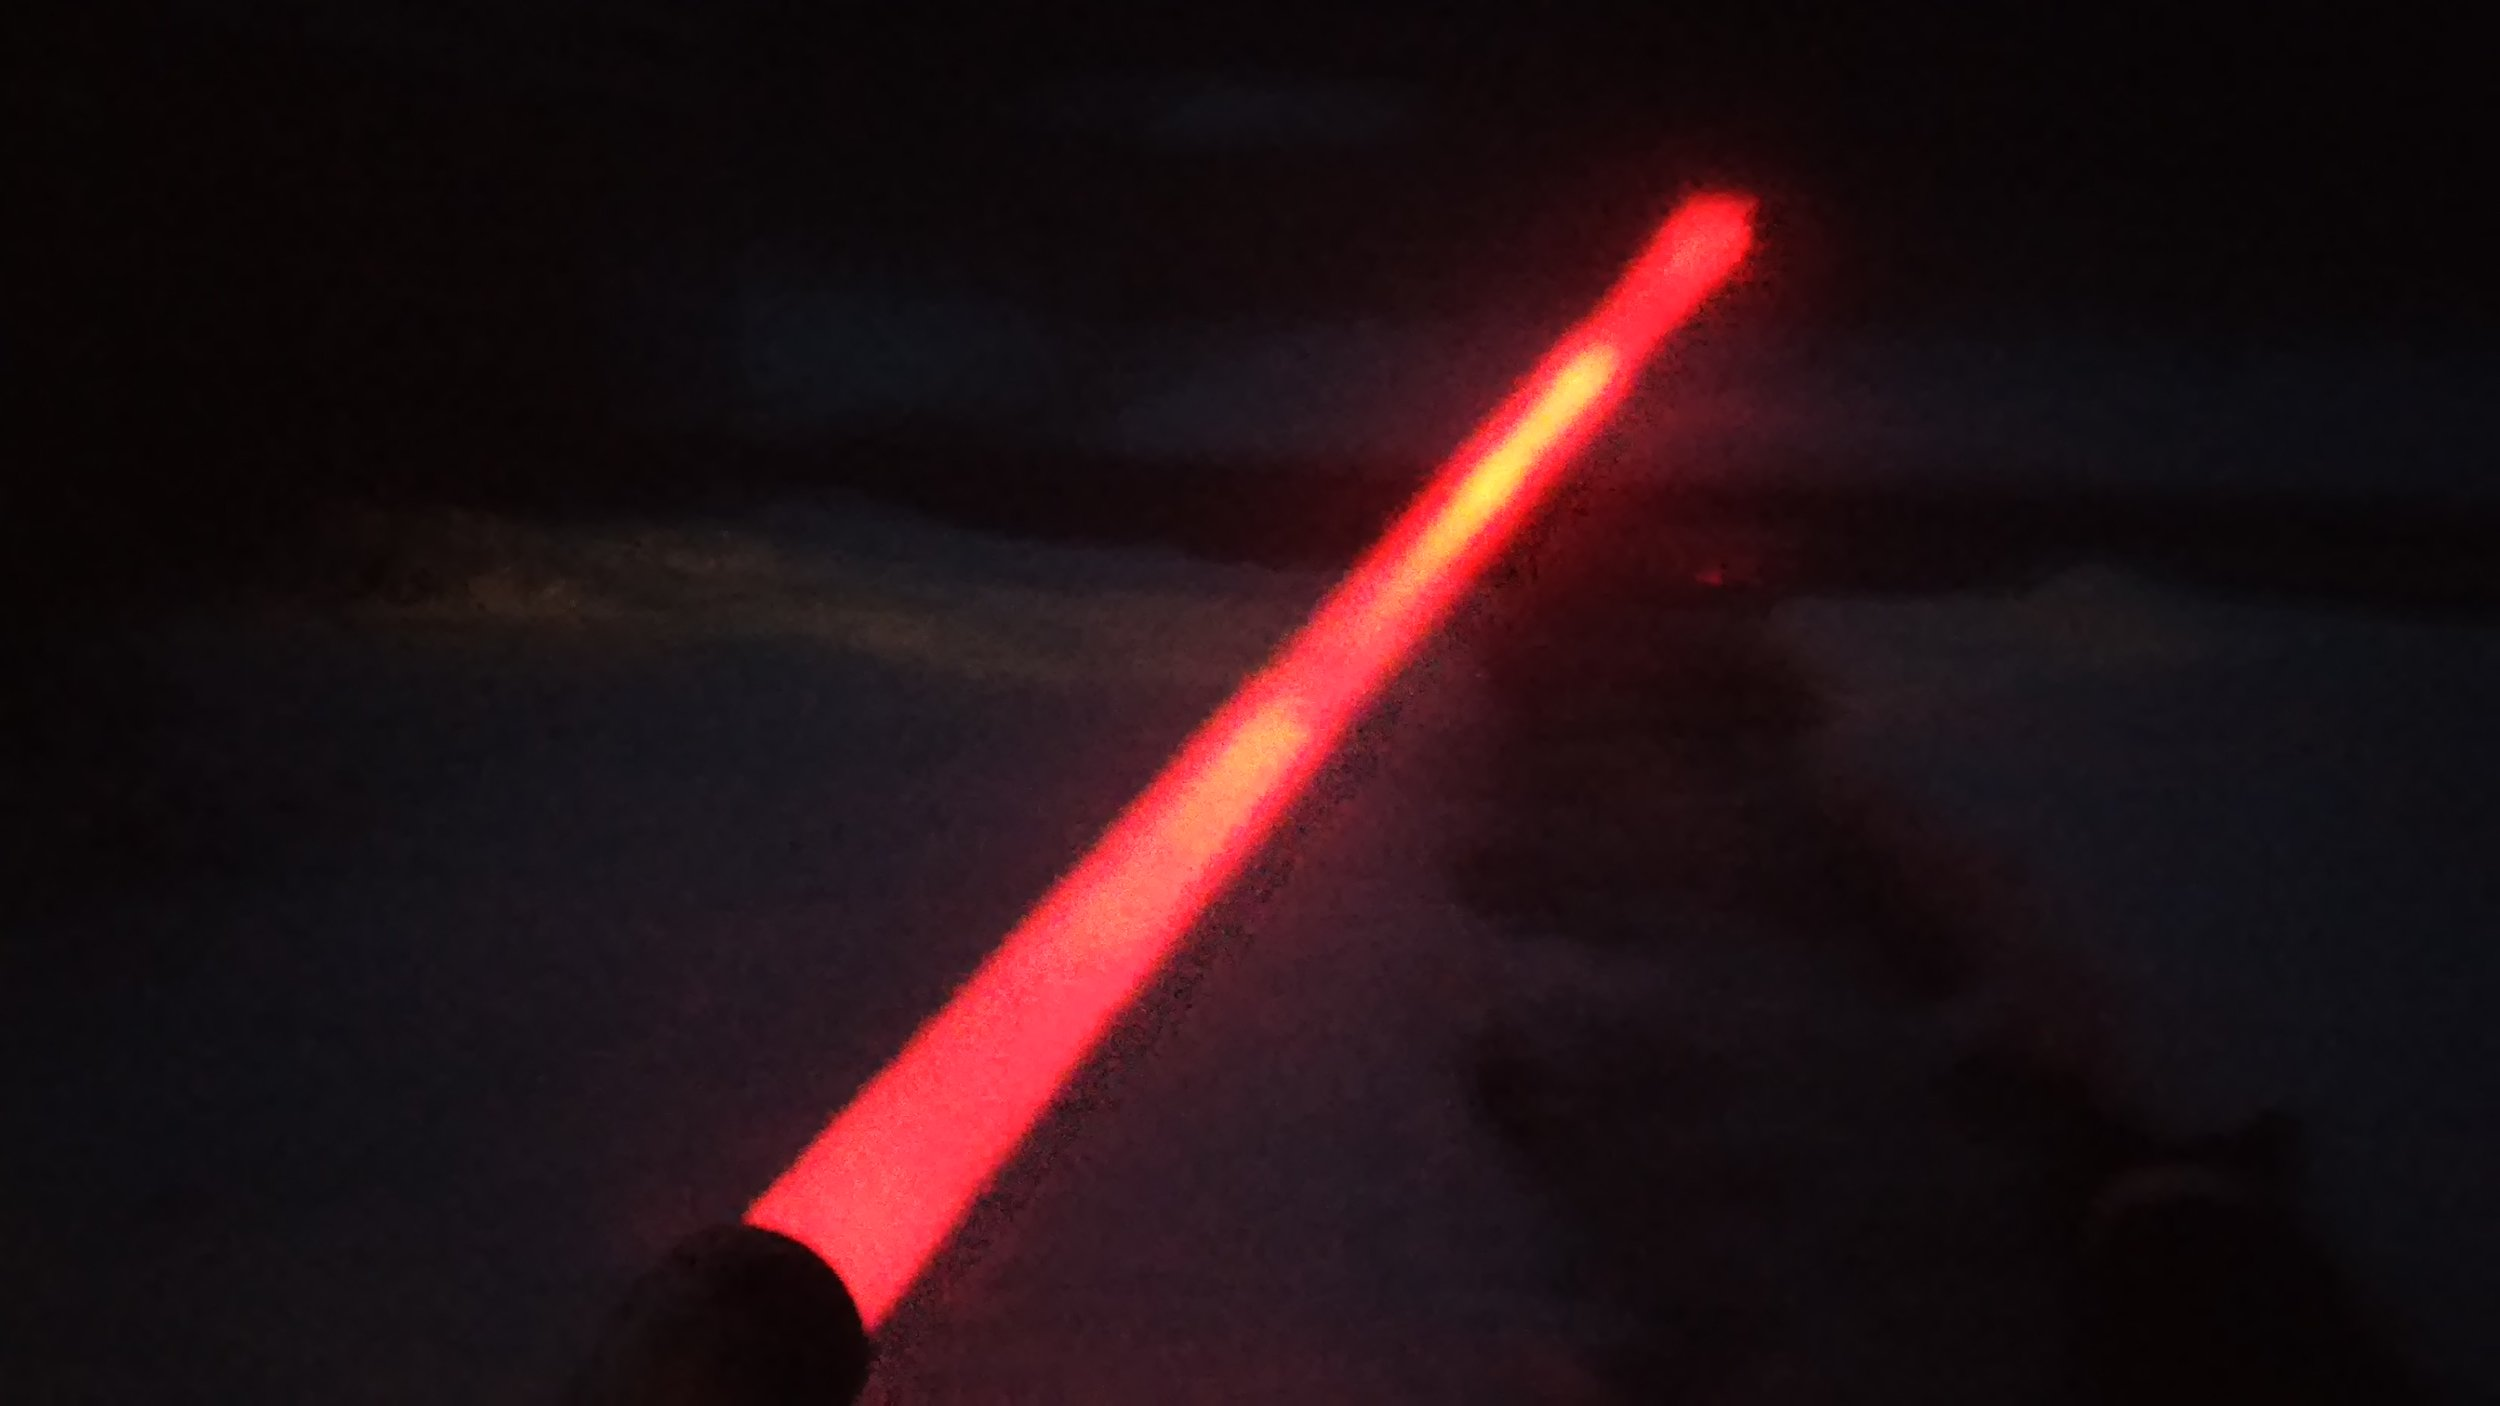 Potato quality phone pic of the red Strike in the fog on our last night with it prior to delivery to the customer.